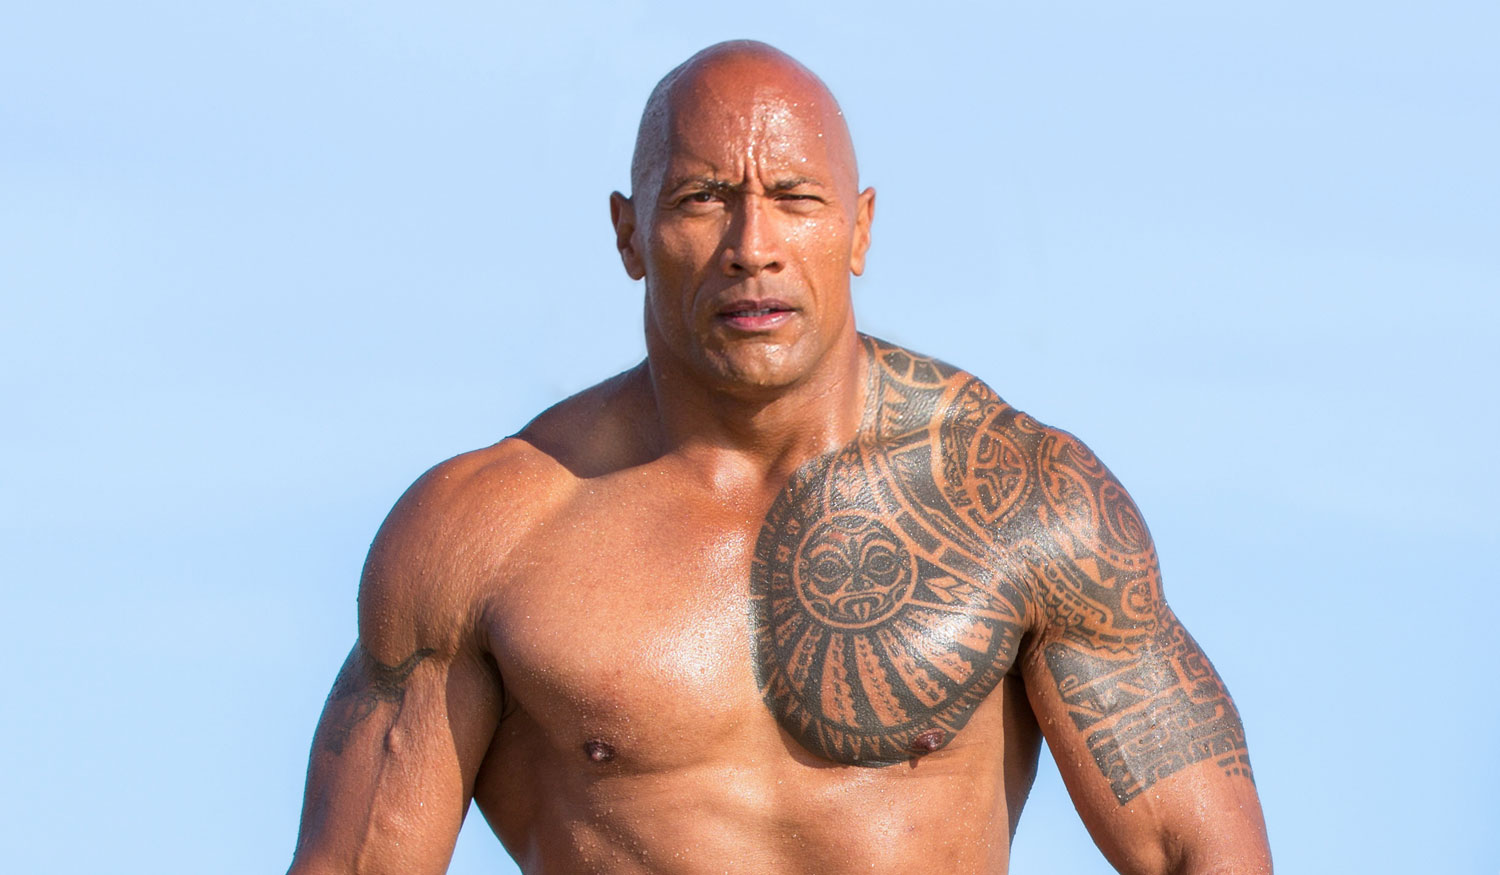 Images Of Dwayne The Rock Johnson: Dwayne Johnson Jokes About 'Baywatch' Movie's Bad Reviews